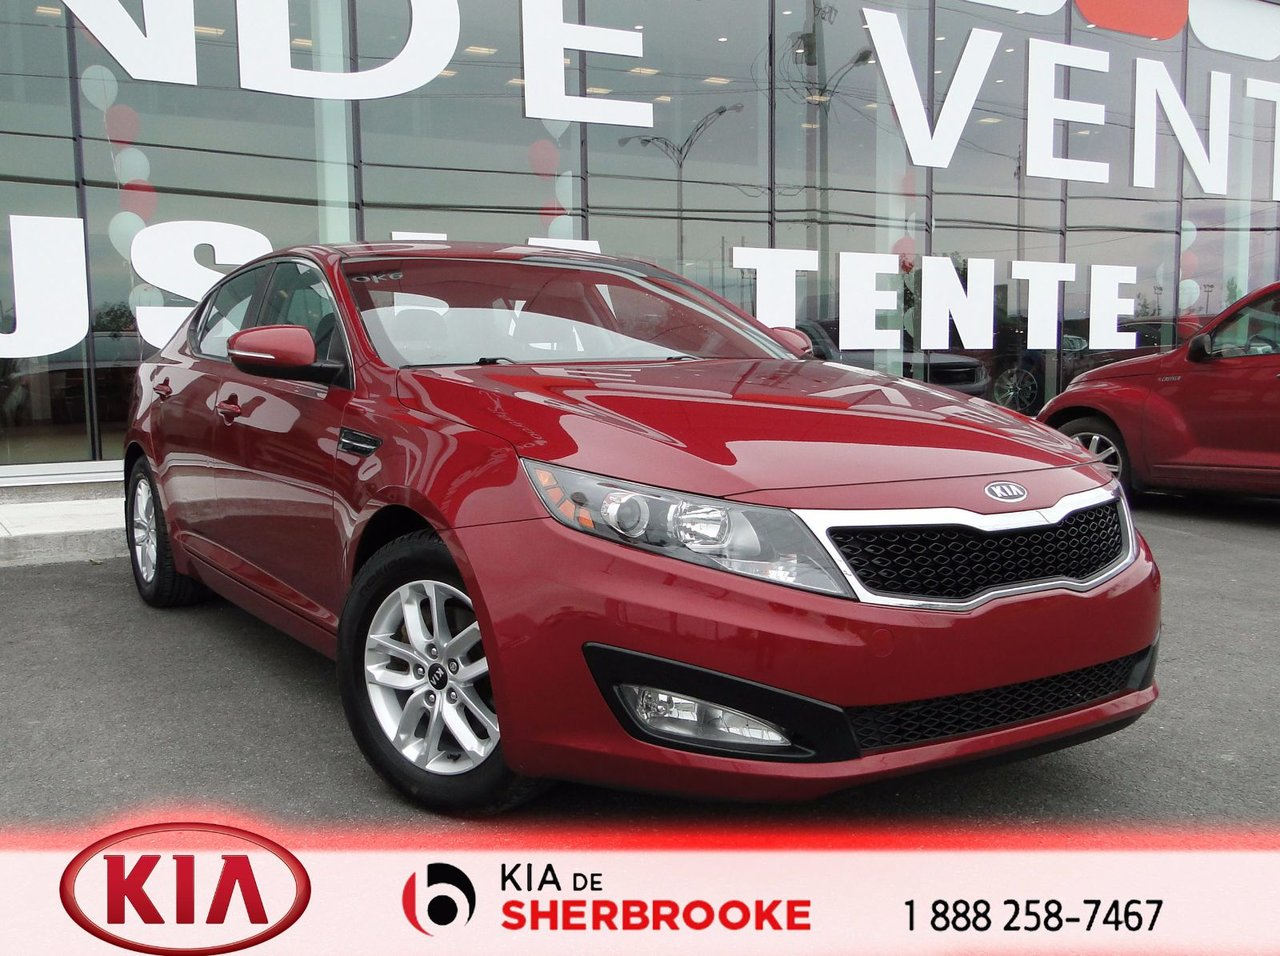 kia optima 2012 d 39 occasion vendre chez kia de sherbrooke. Black Bedroom Furniture Sets. Home Design Ideas